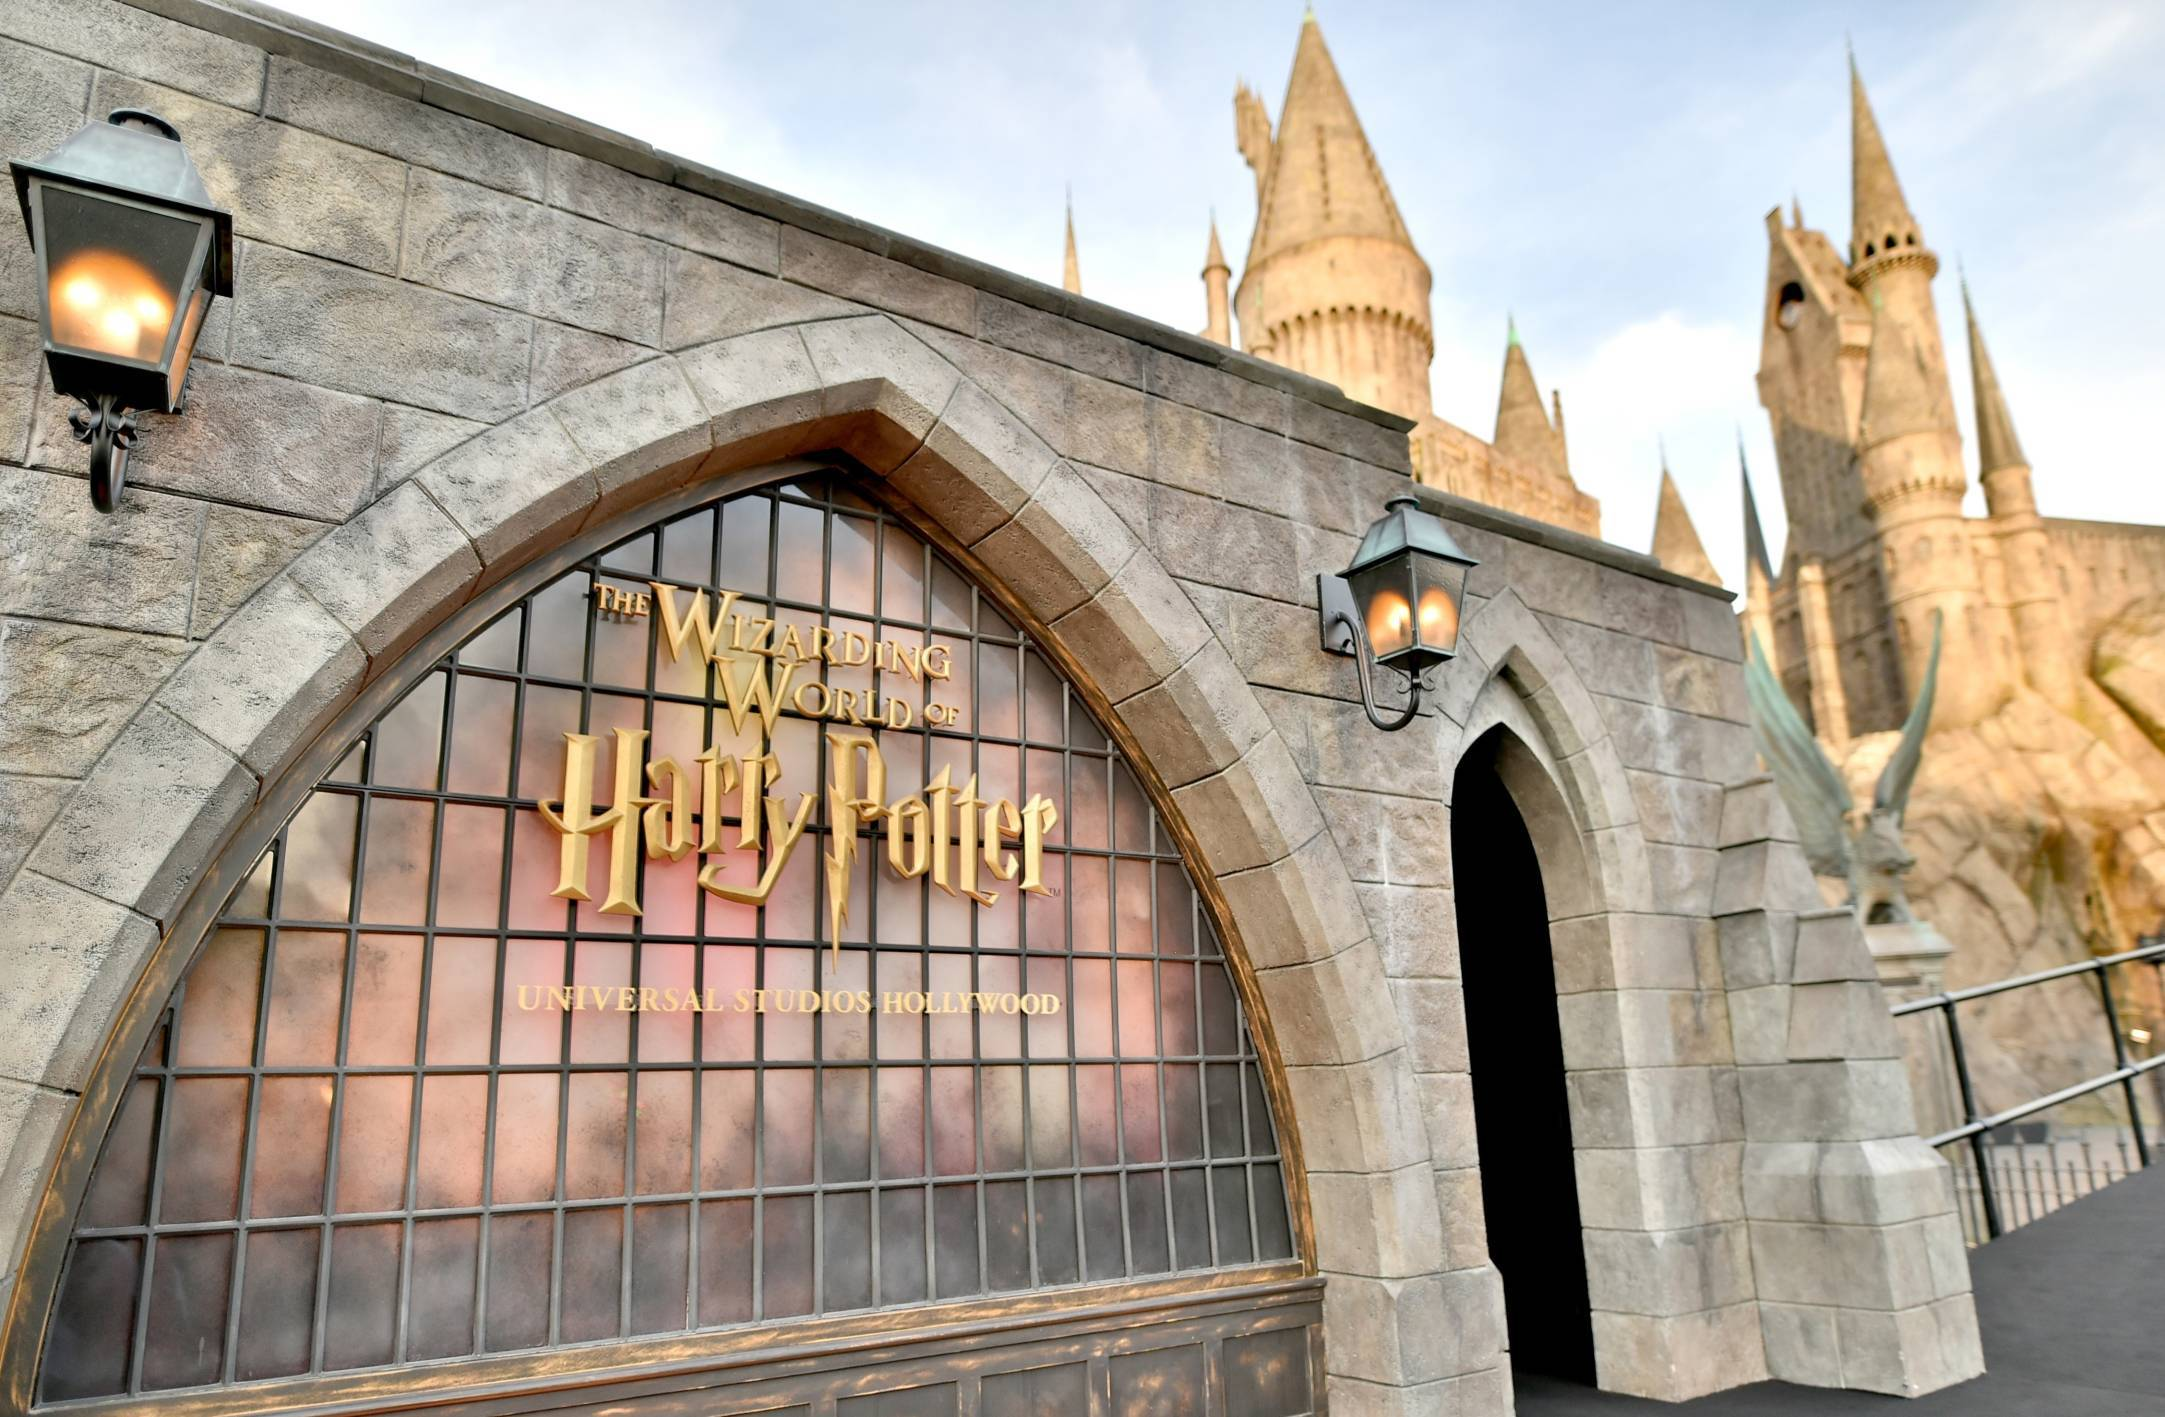 Signage at the opening of the 'Wizarding World of Harry Potter'